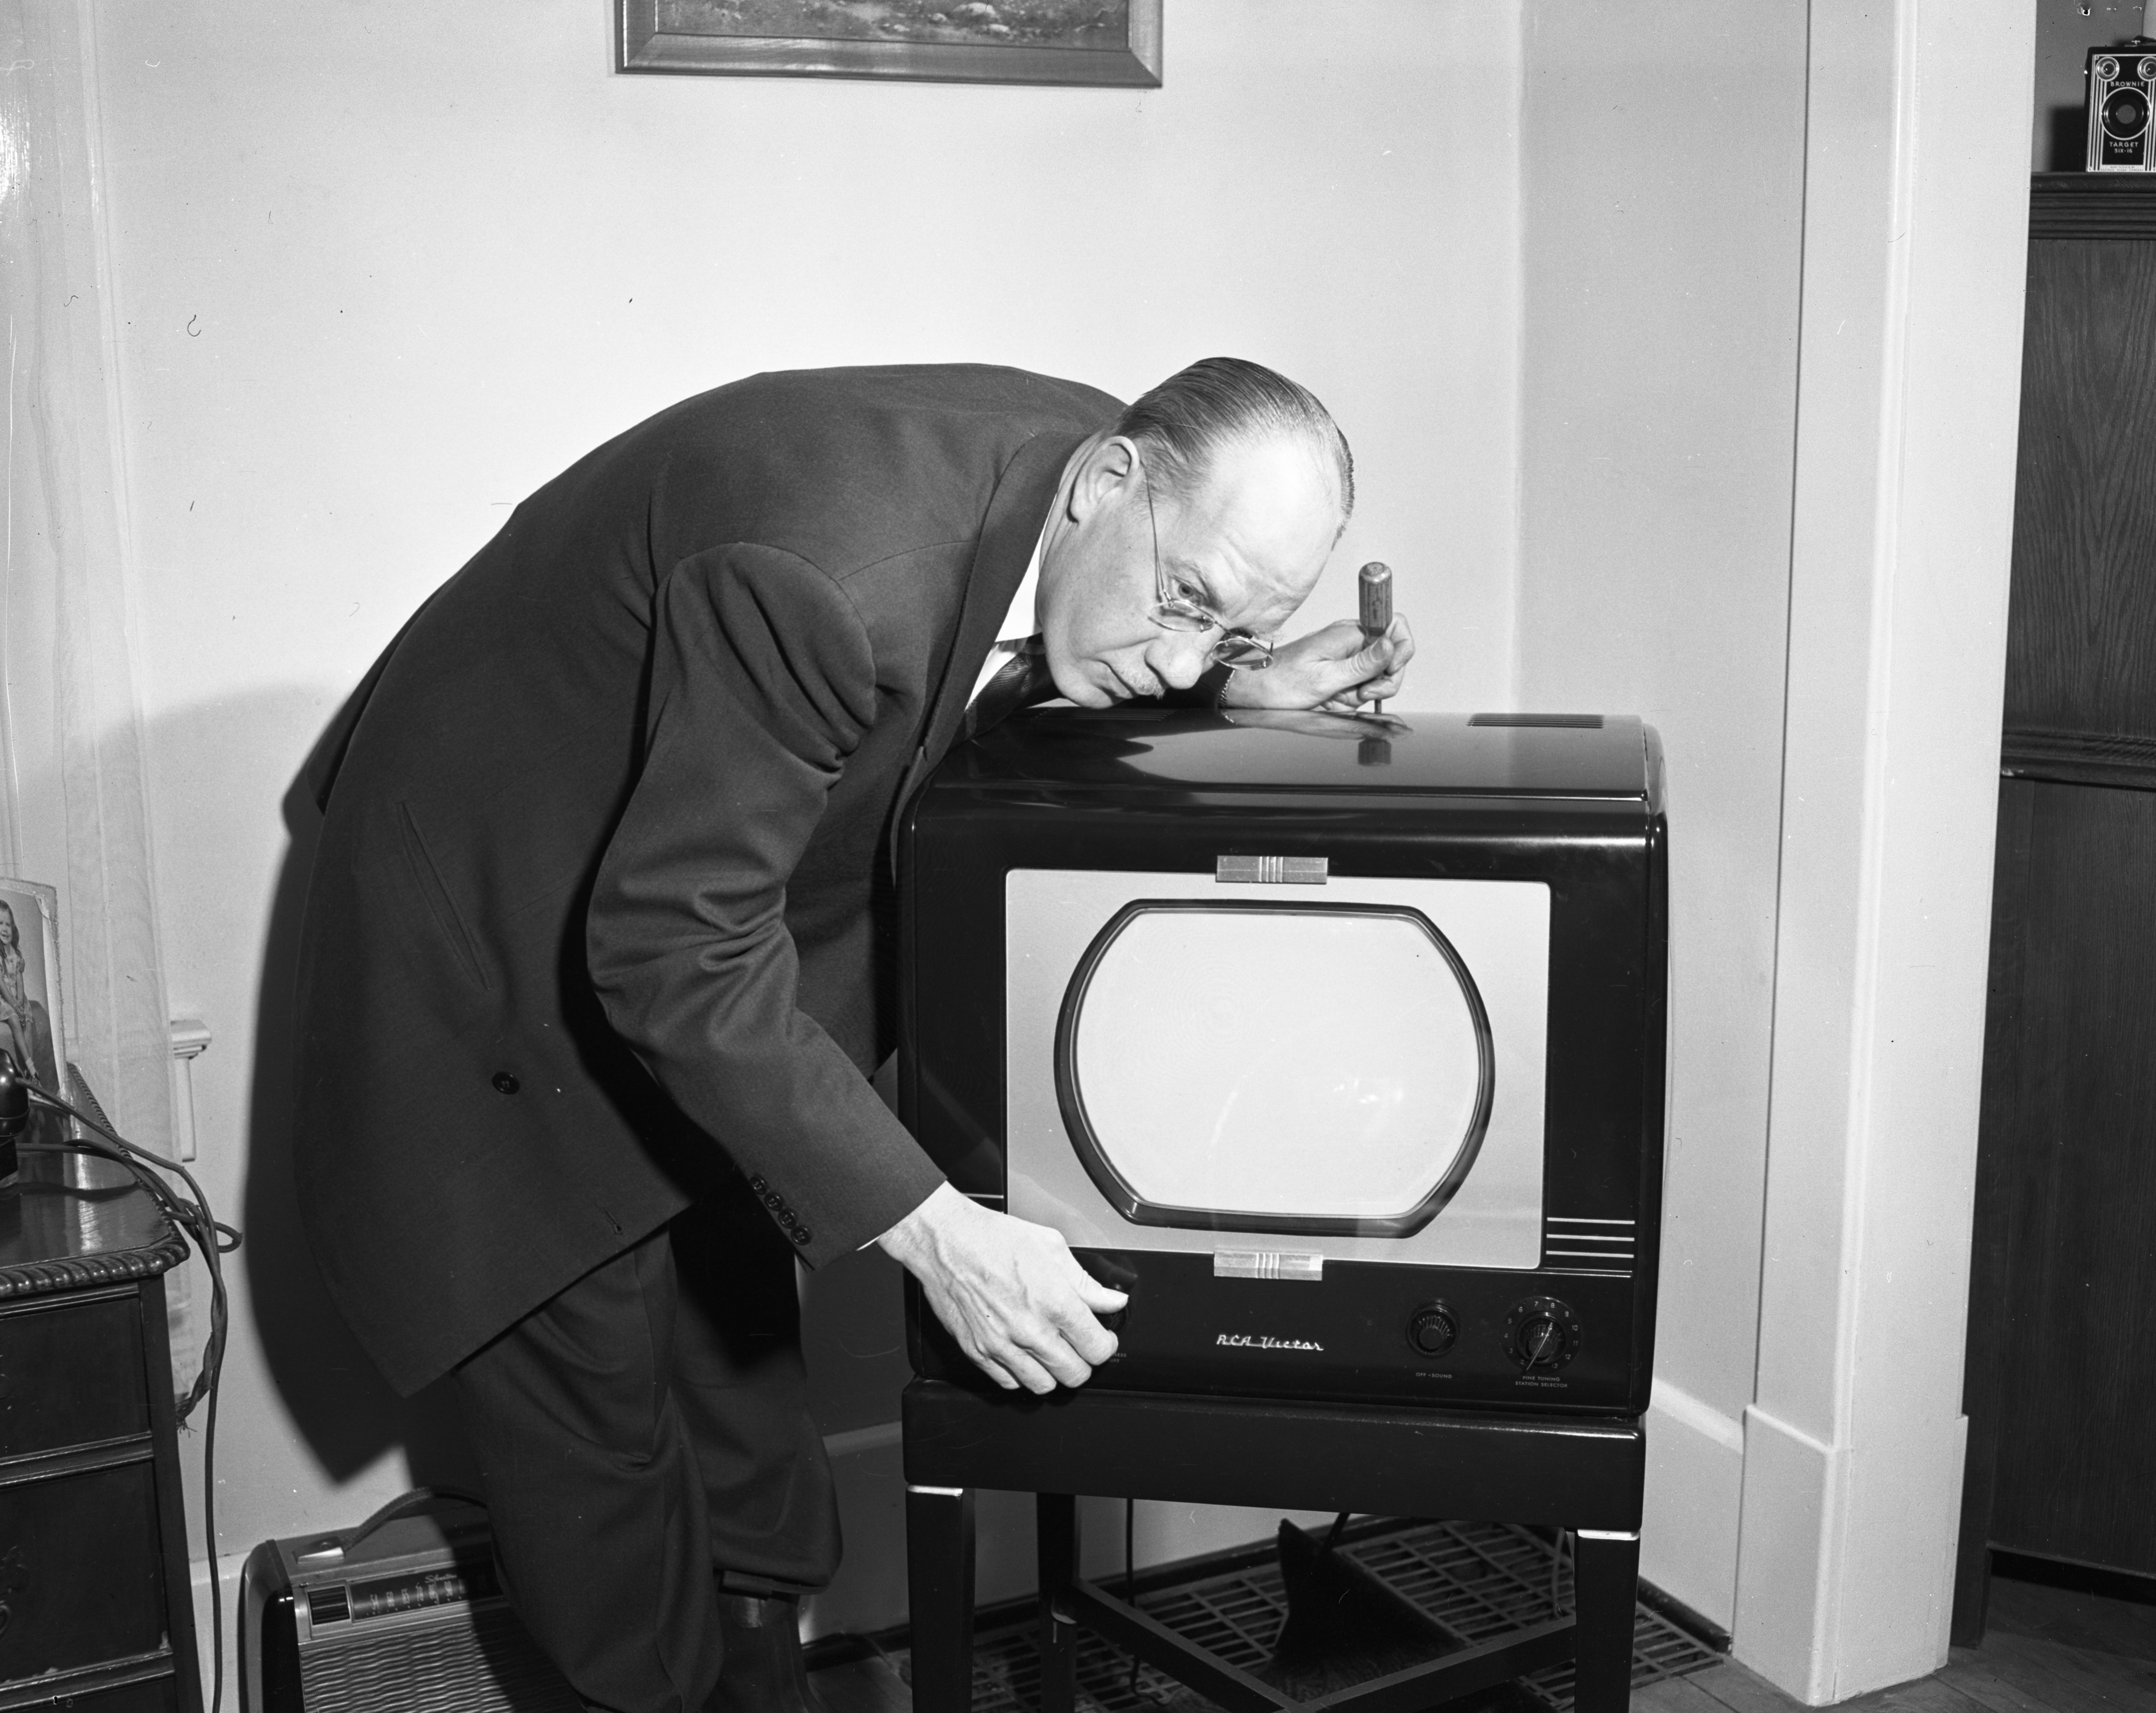 Bob Moorehouse, RCA Television Service, March 1950 image